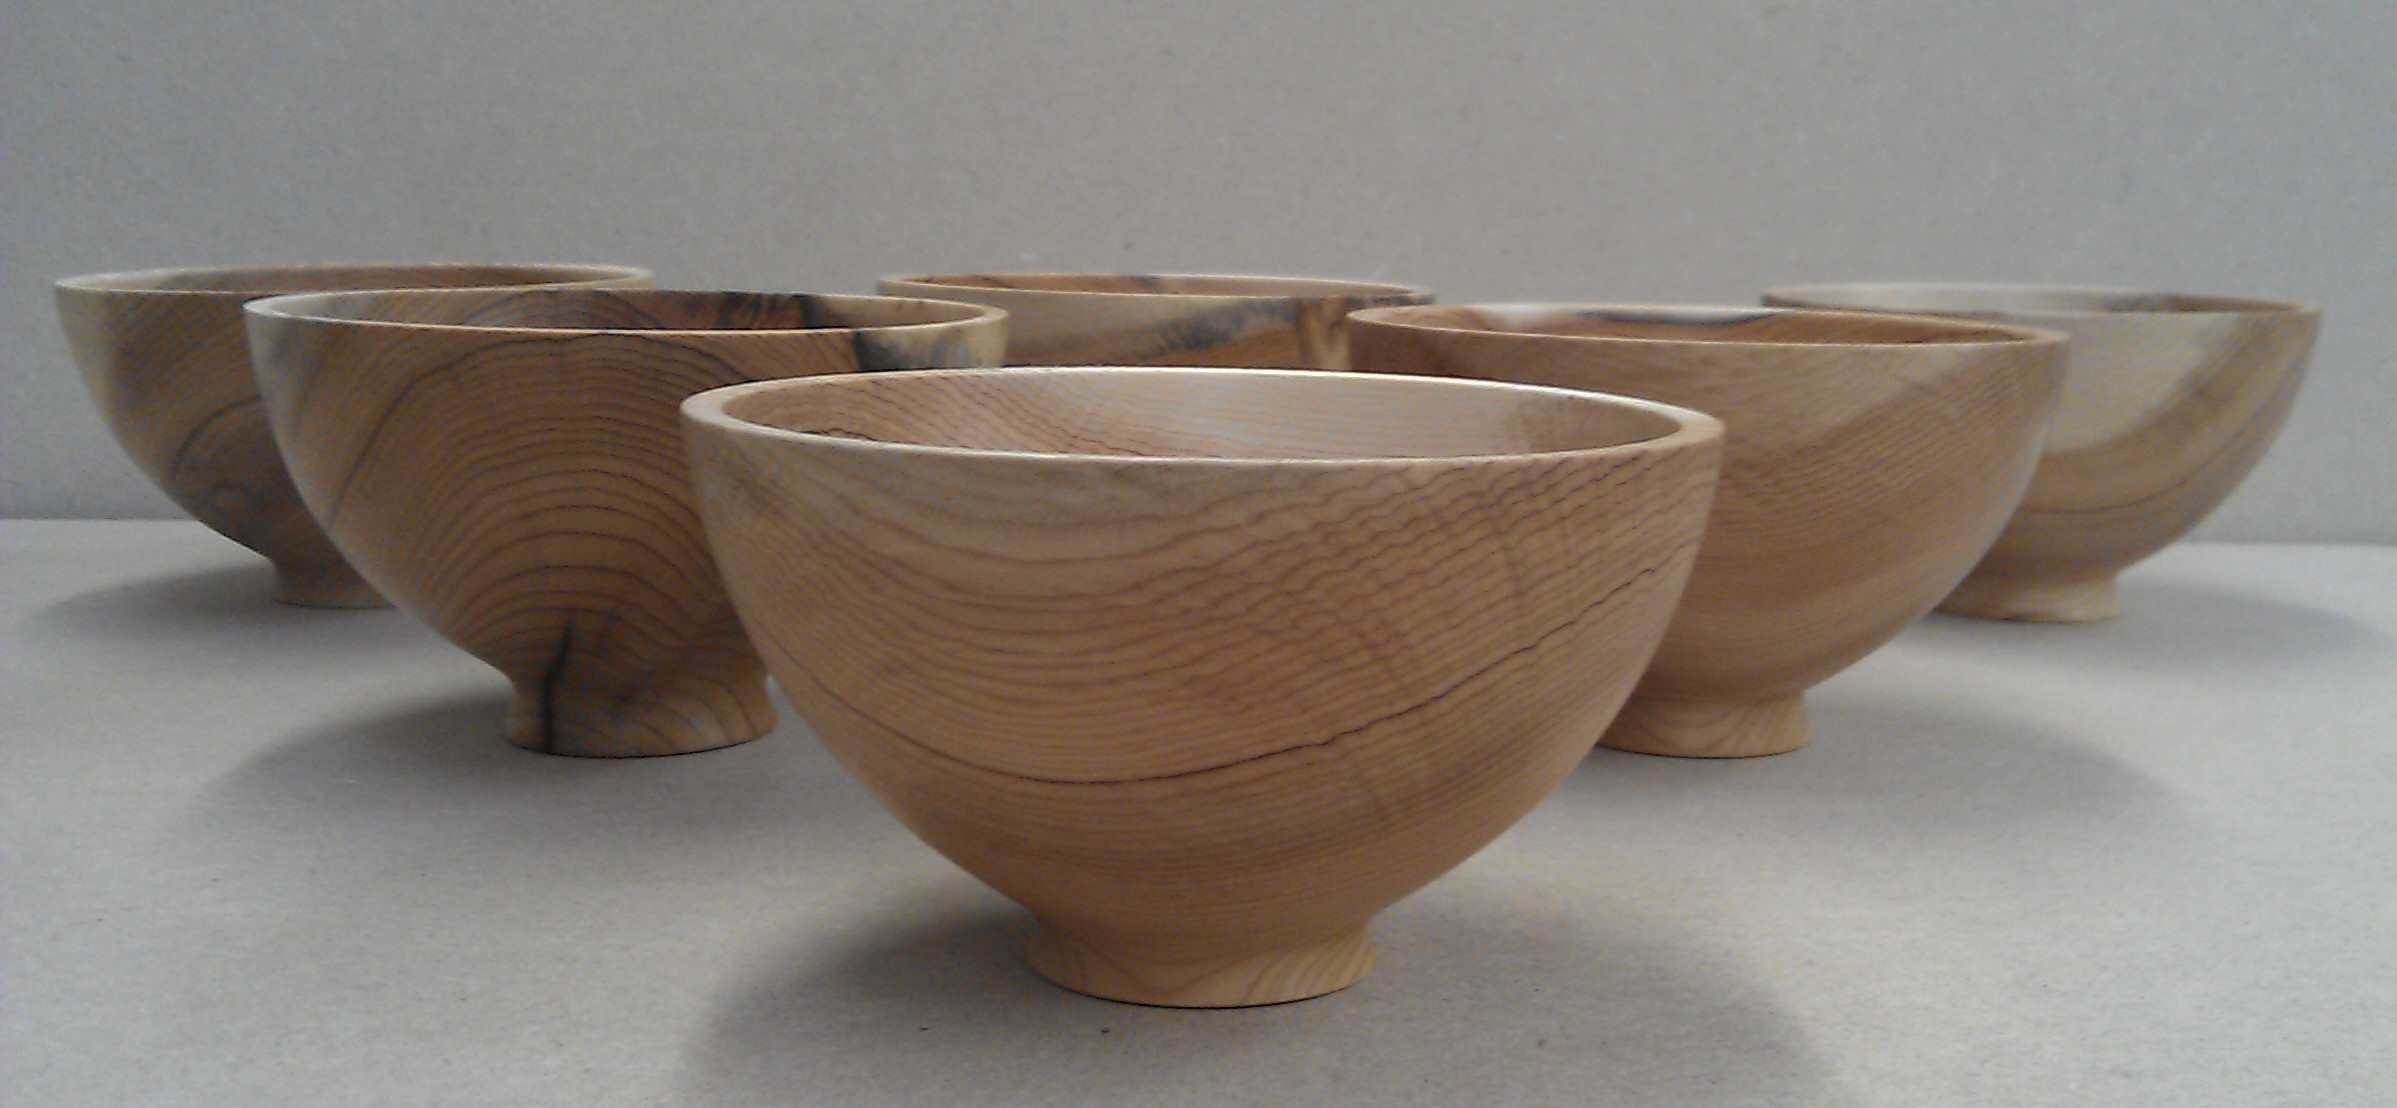 yew bowls ,woodturning, yew, bespoke, Scottish, Scotland, turned bowl, woodturner, custom made, special wood,